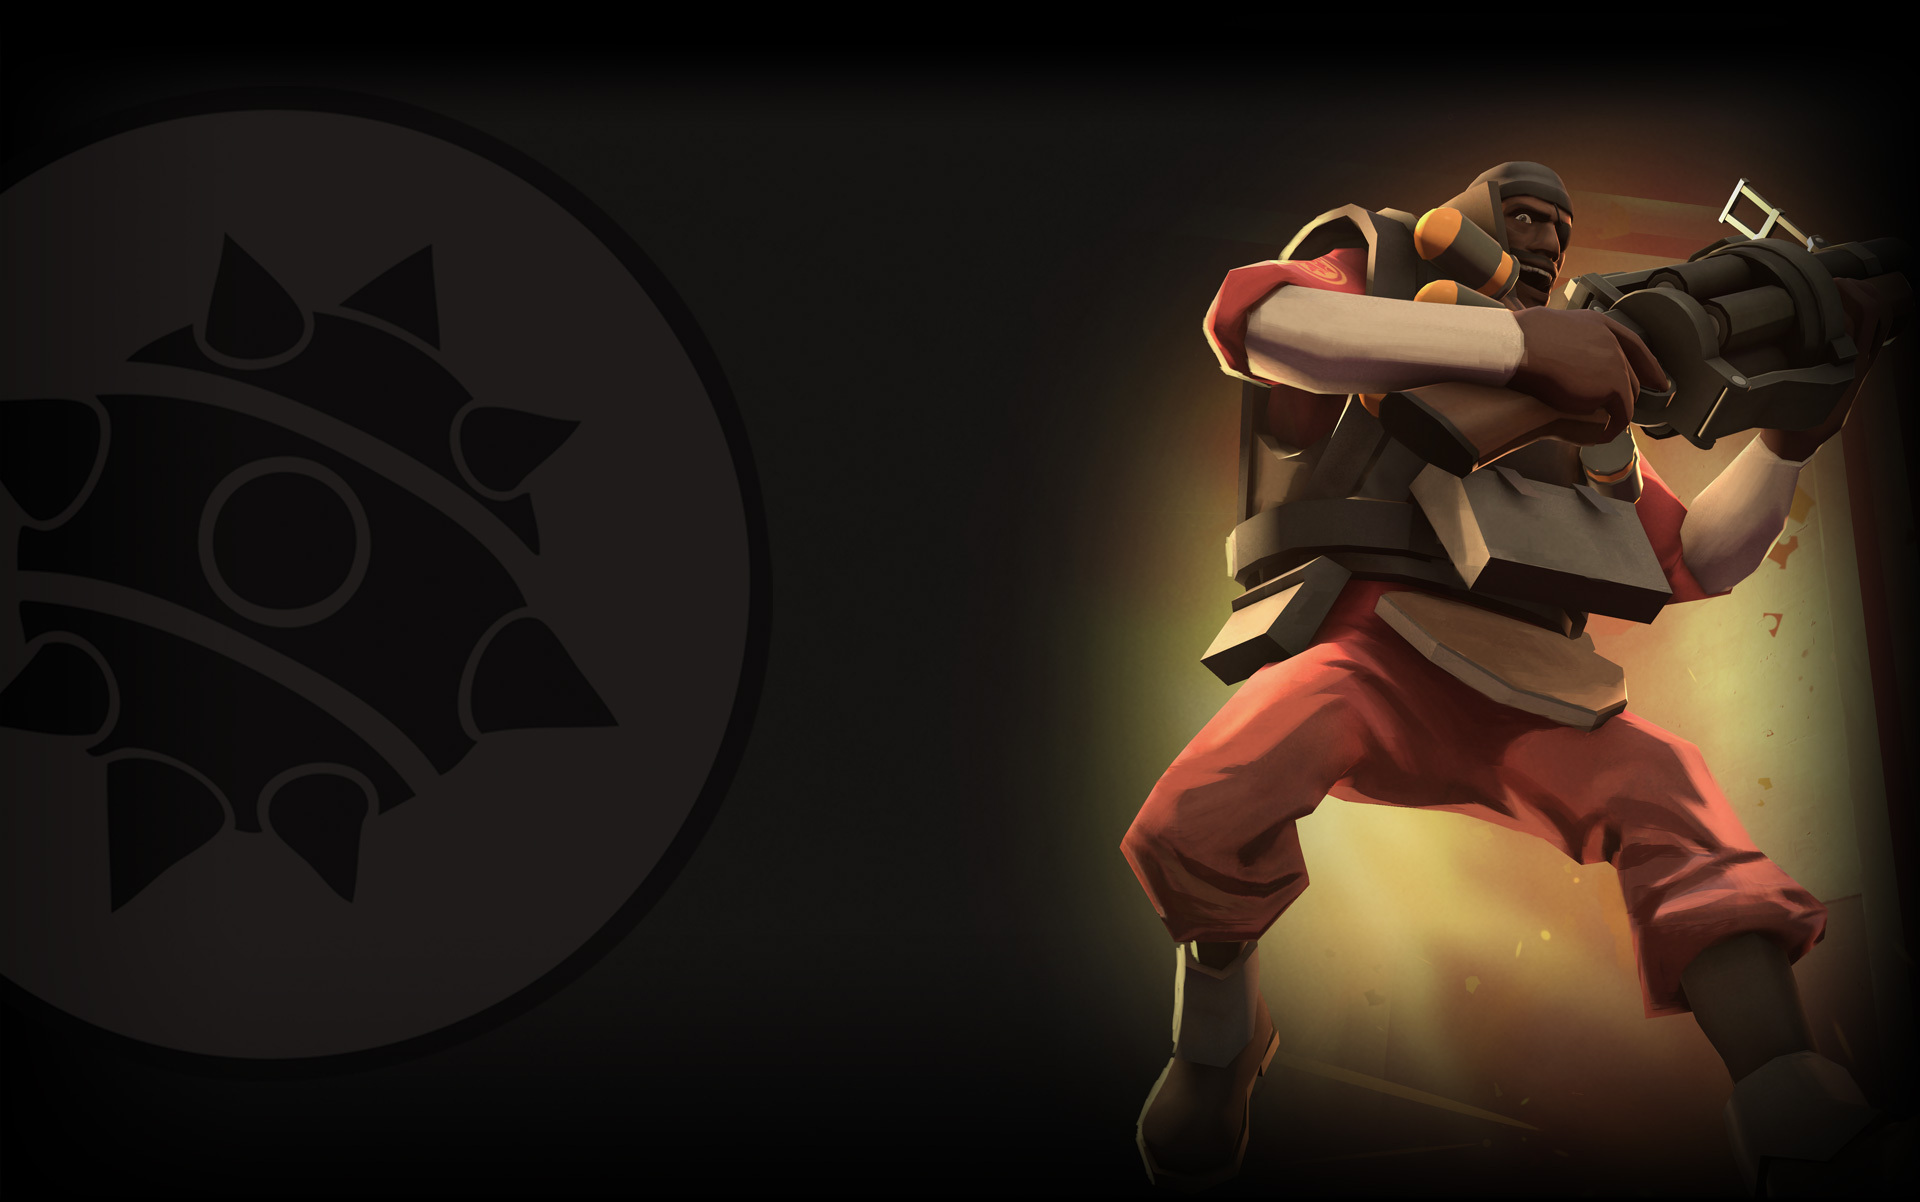 new tf2 wallpapers backgrounds - photo #12